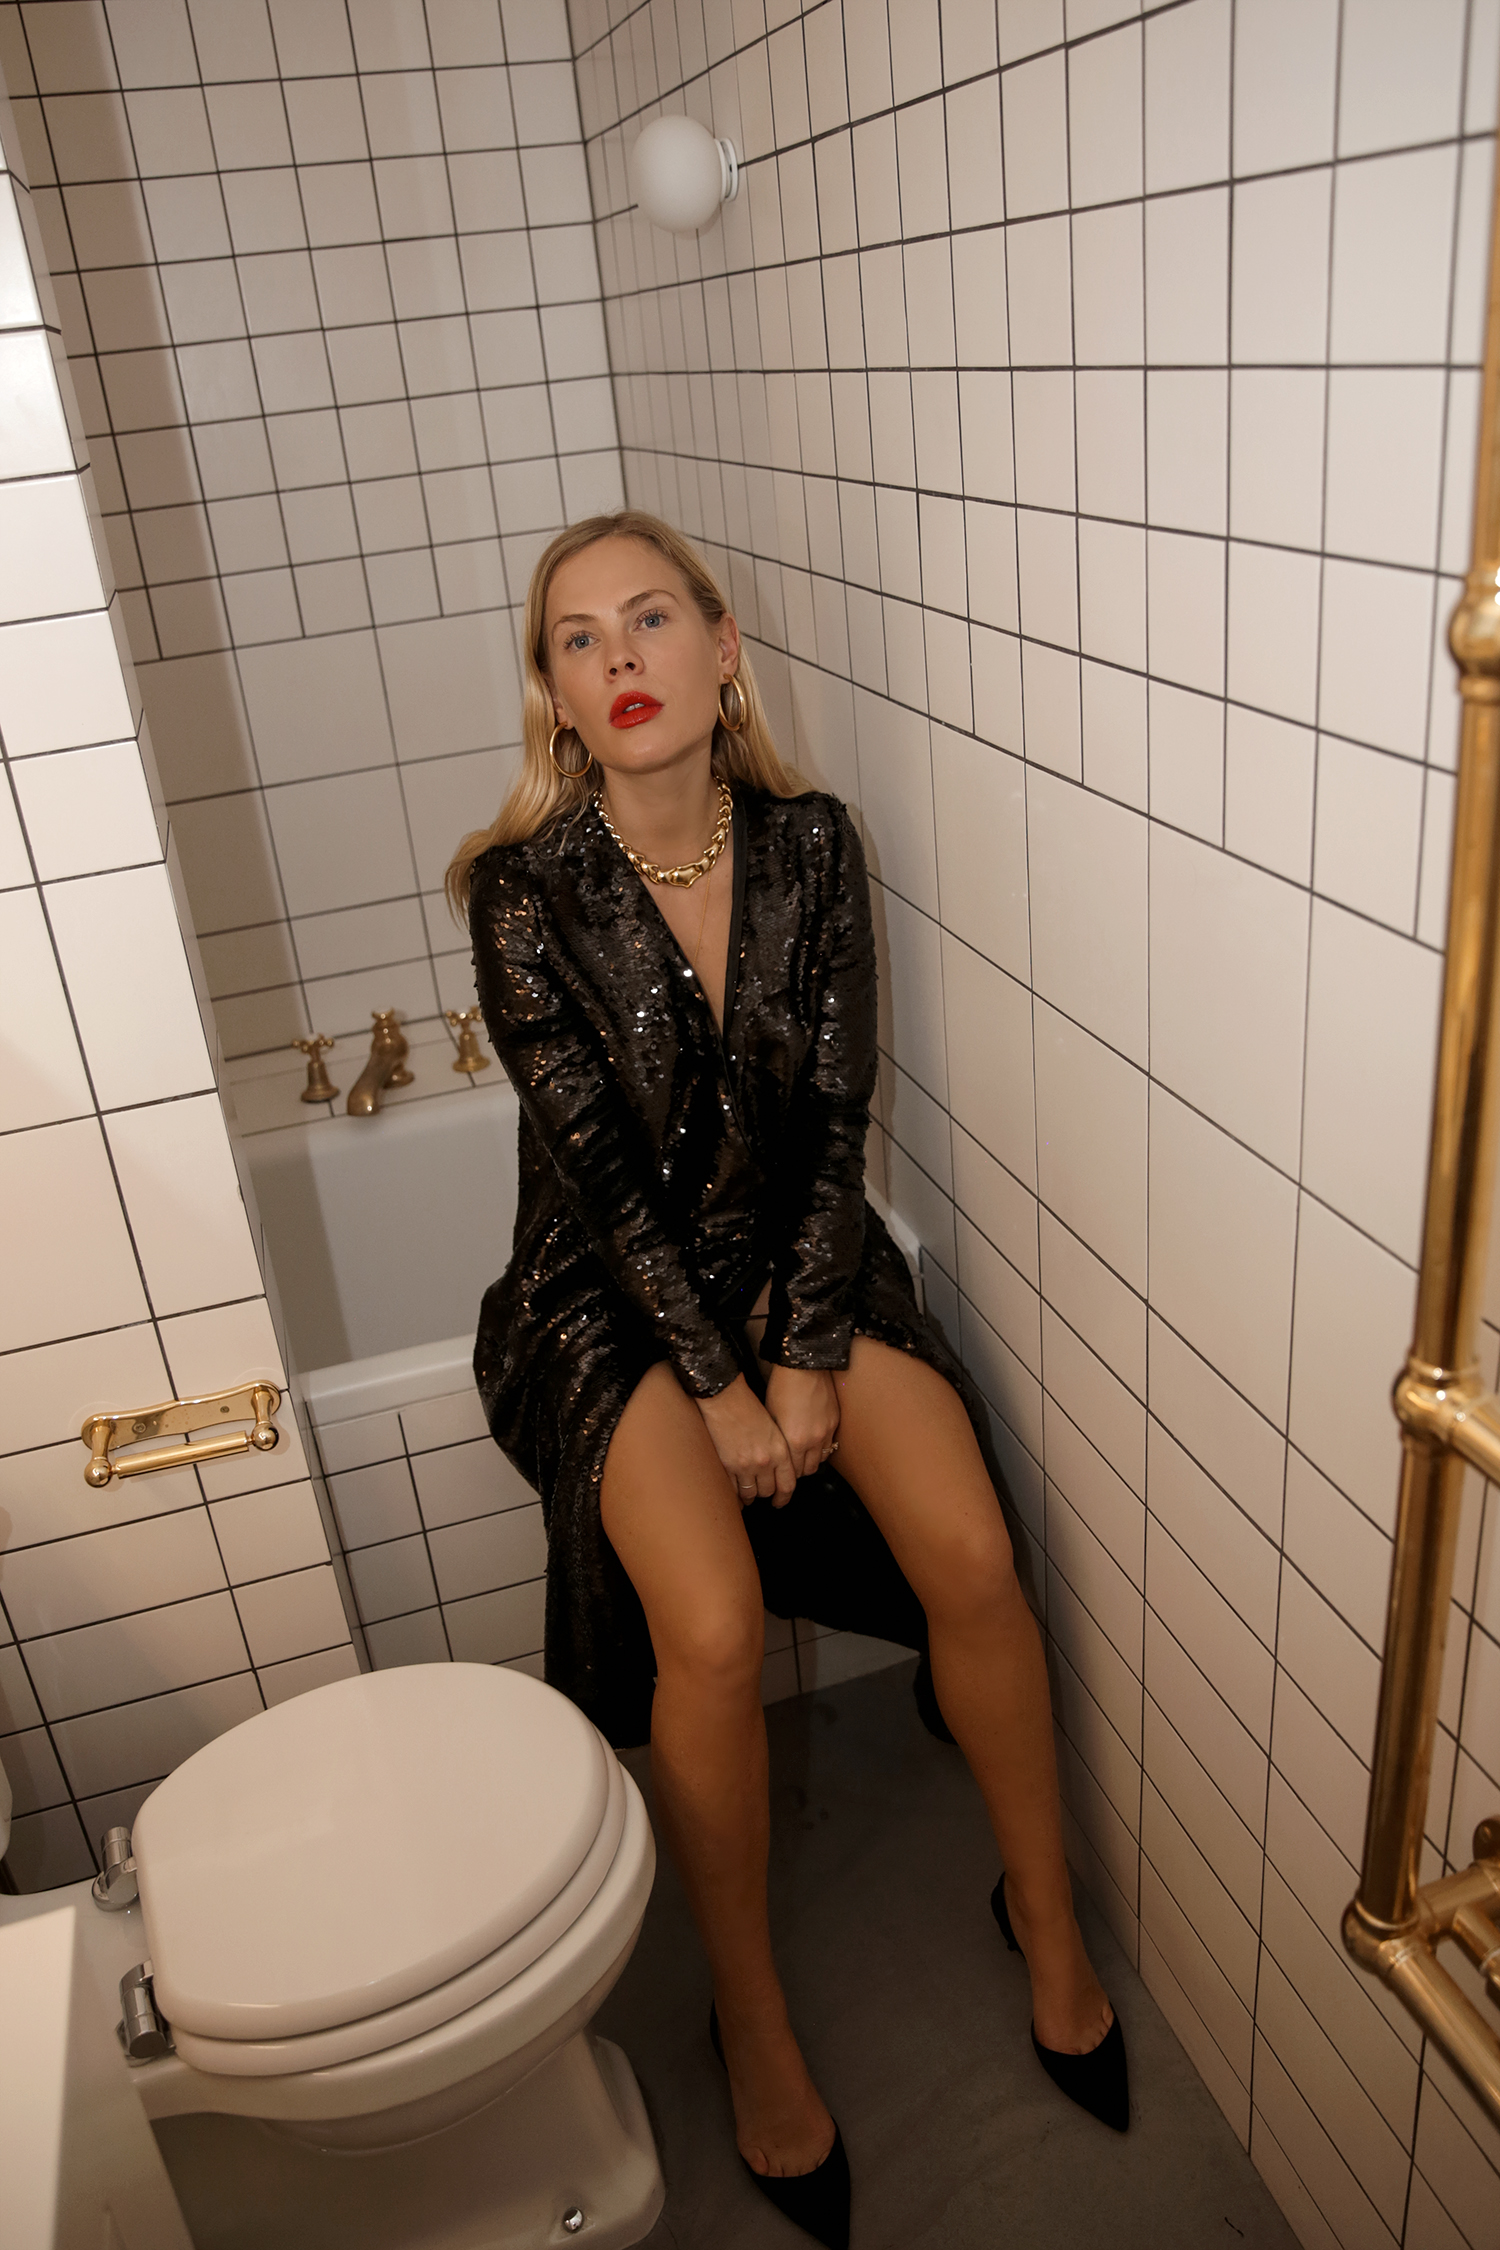 Girl sitting bathroom sequins black heels gold necklace makeup